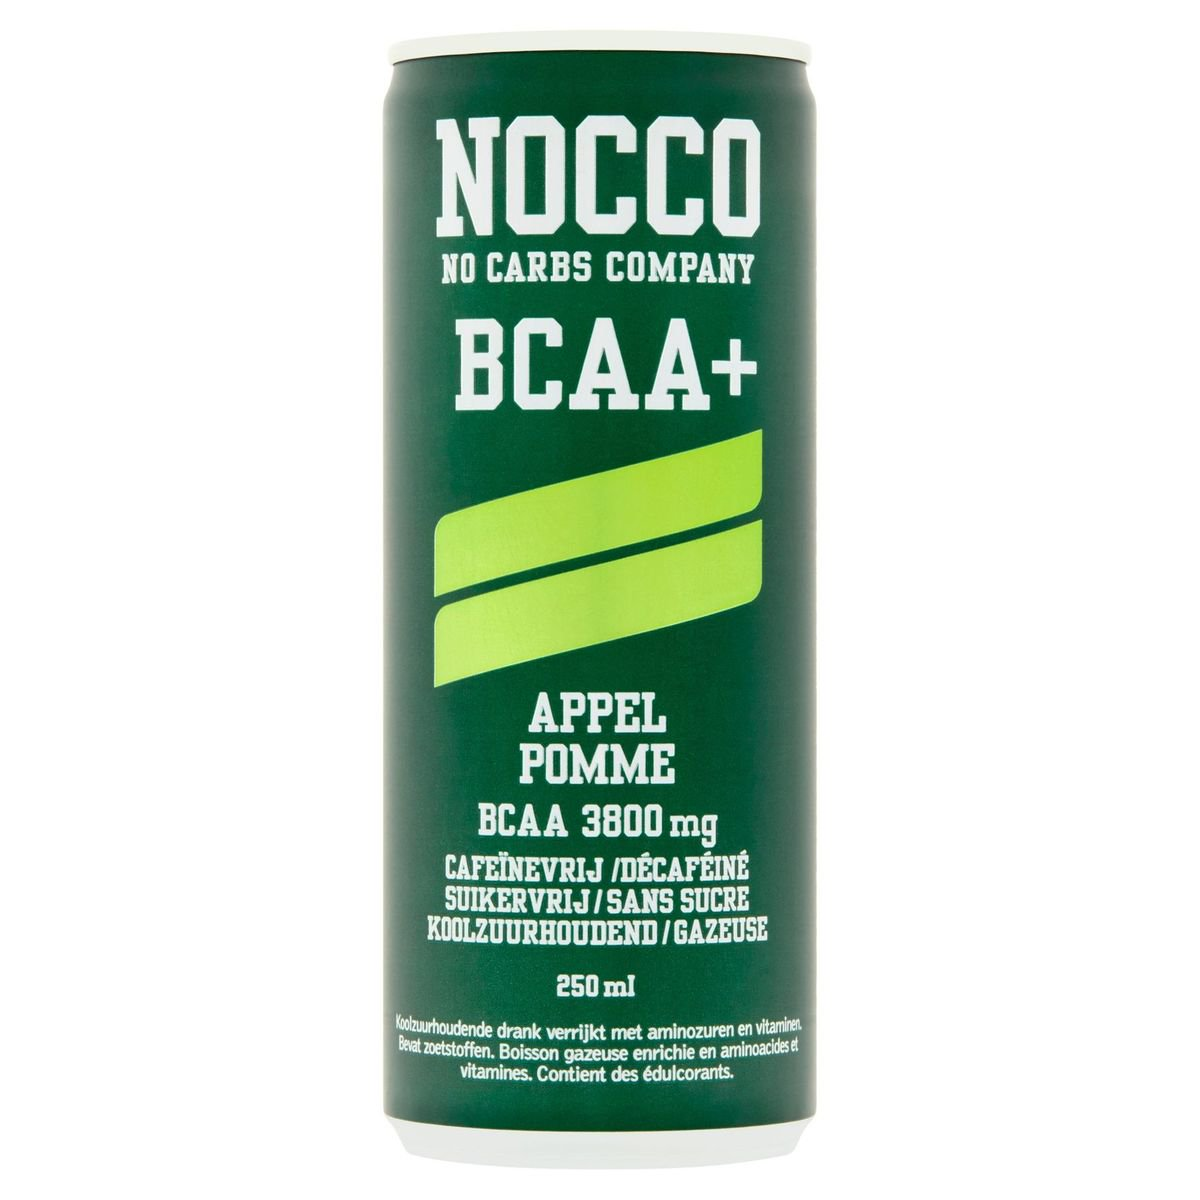 Nocco BCAA+ Pomme 250 ml